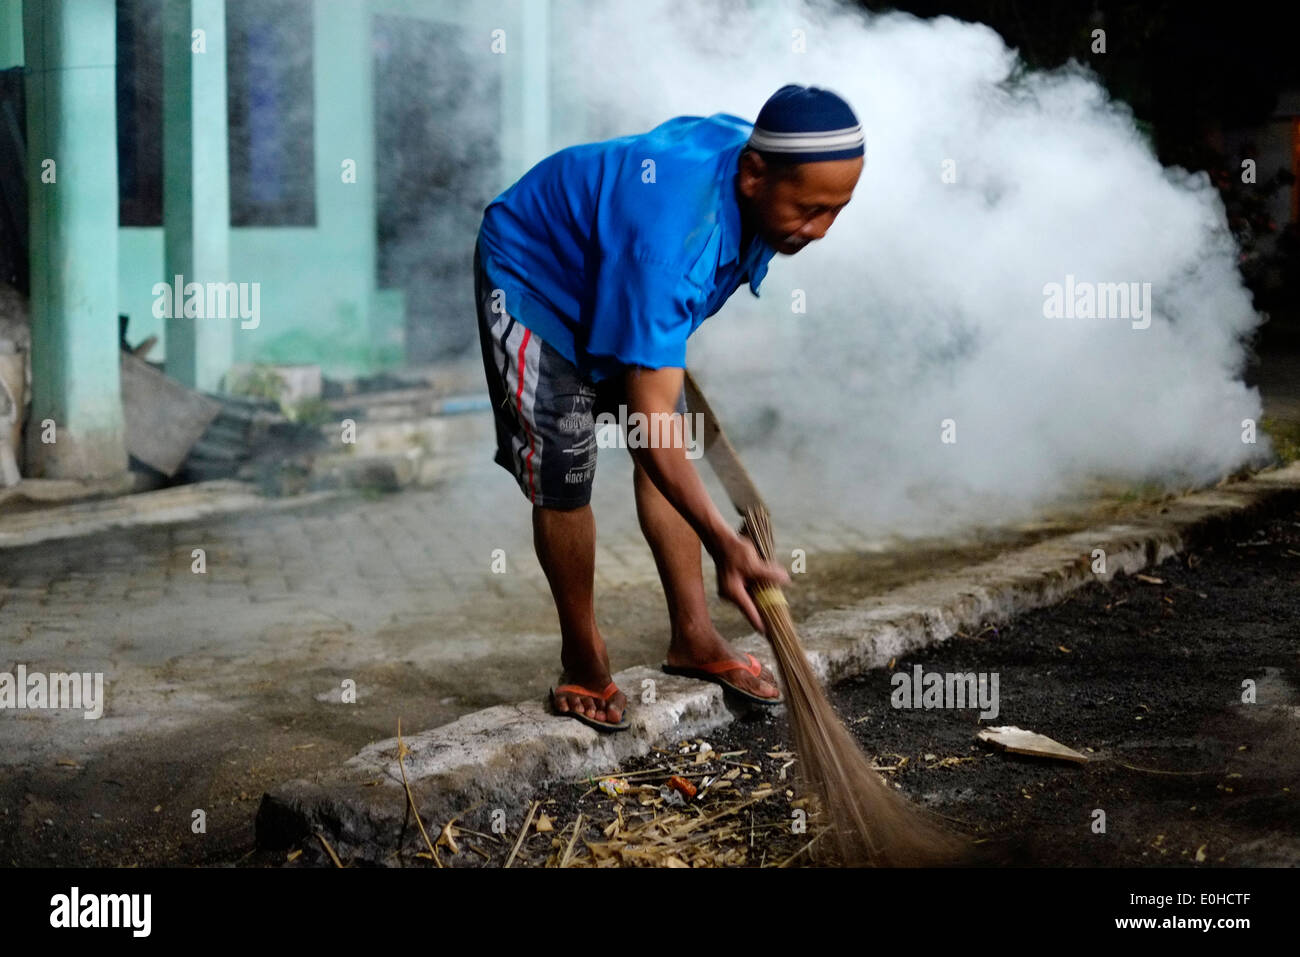 indonesian local villager working at night by the light of a single strip lamp fashioning bamboo and discarding the waste wood - Stock Image